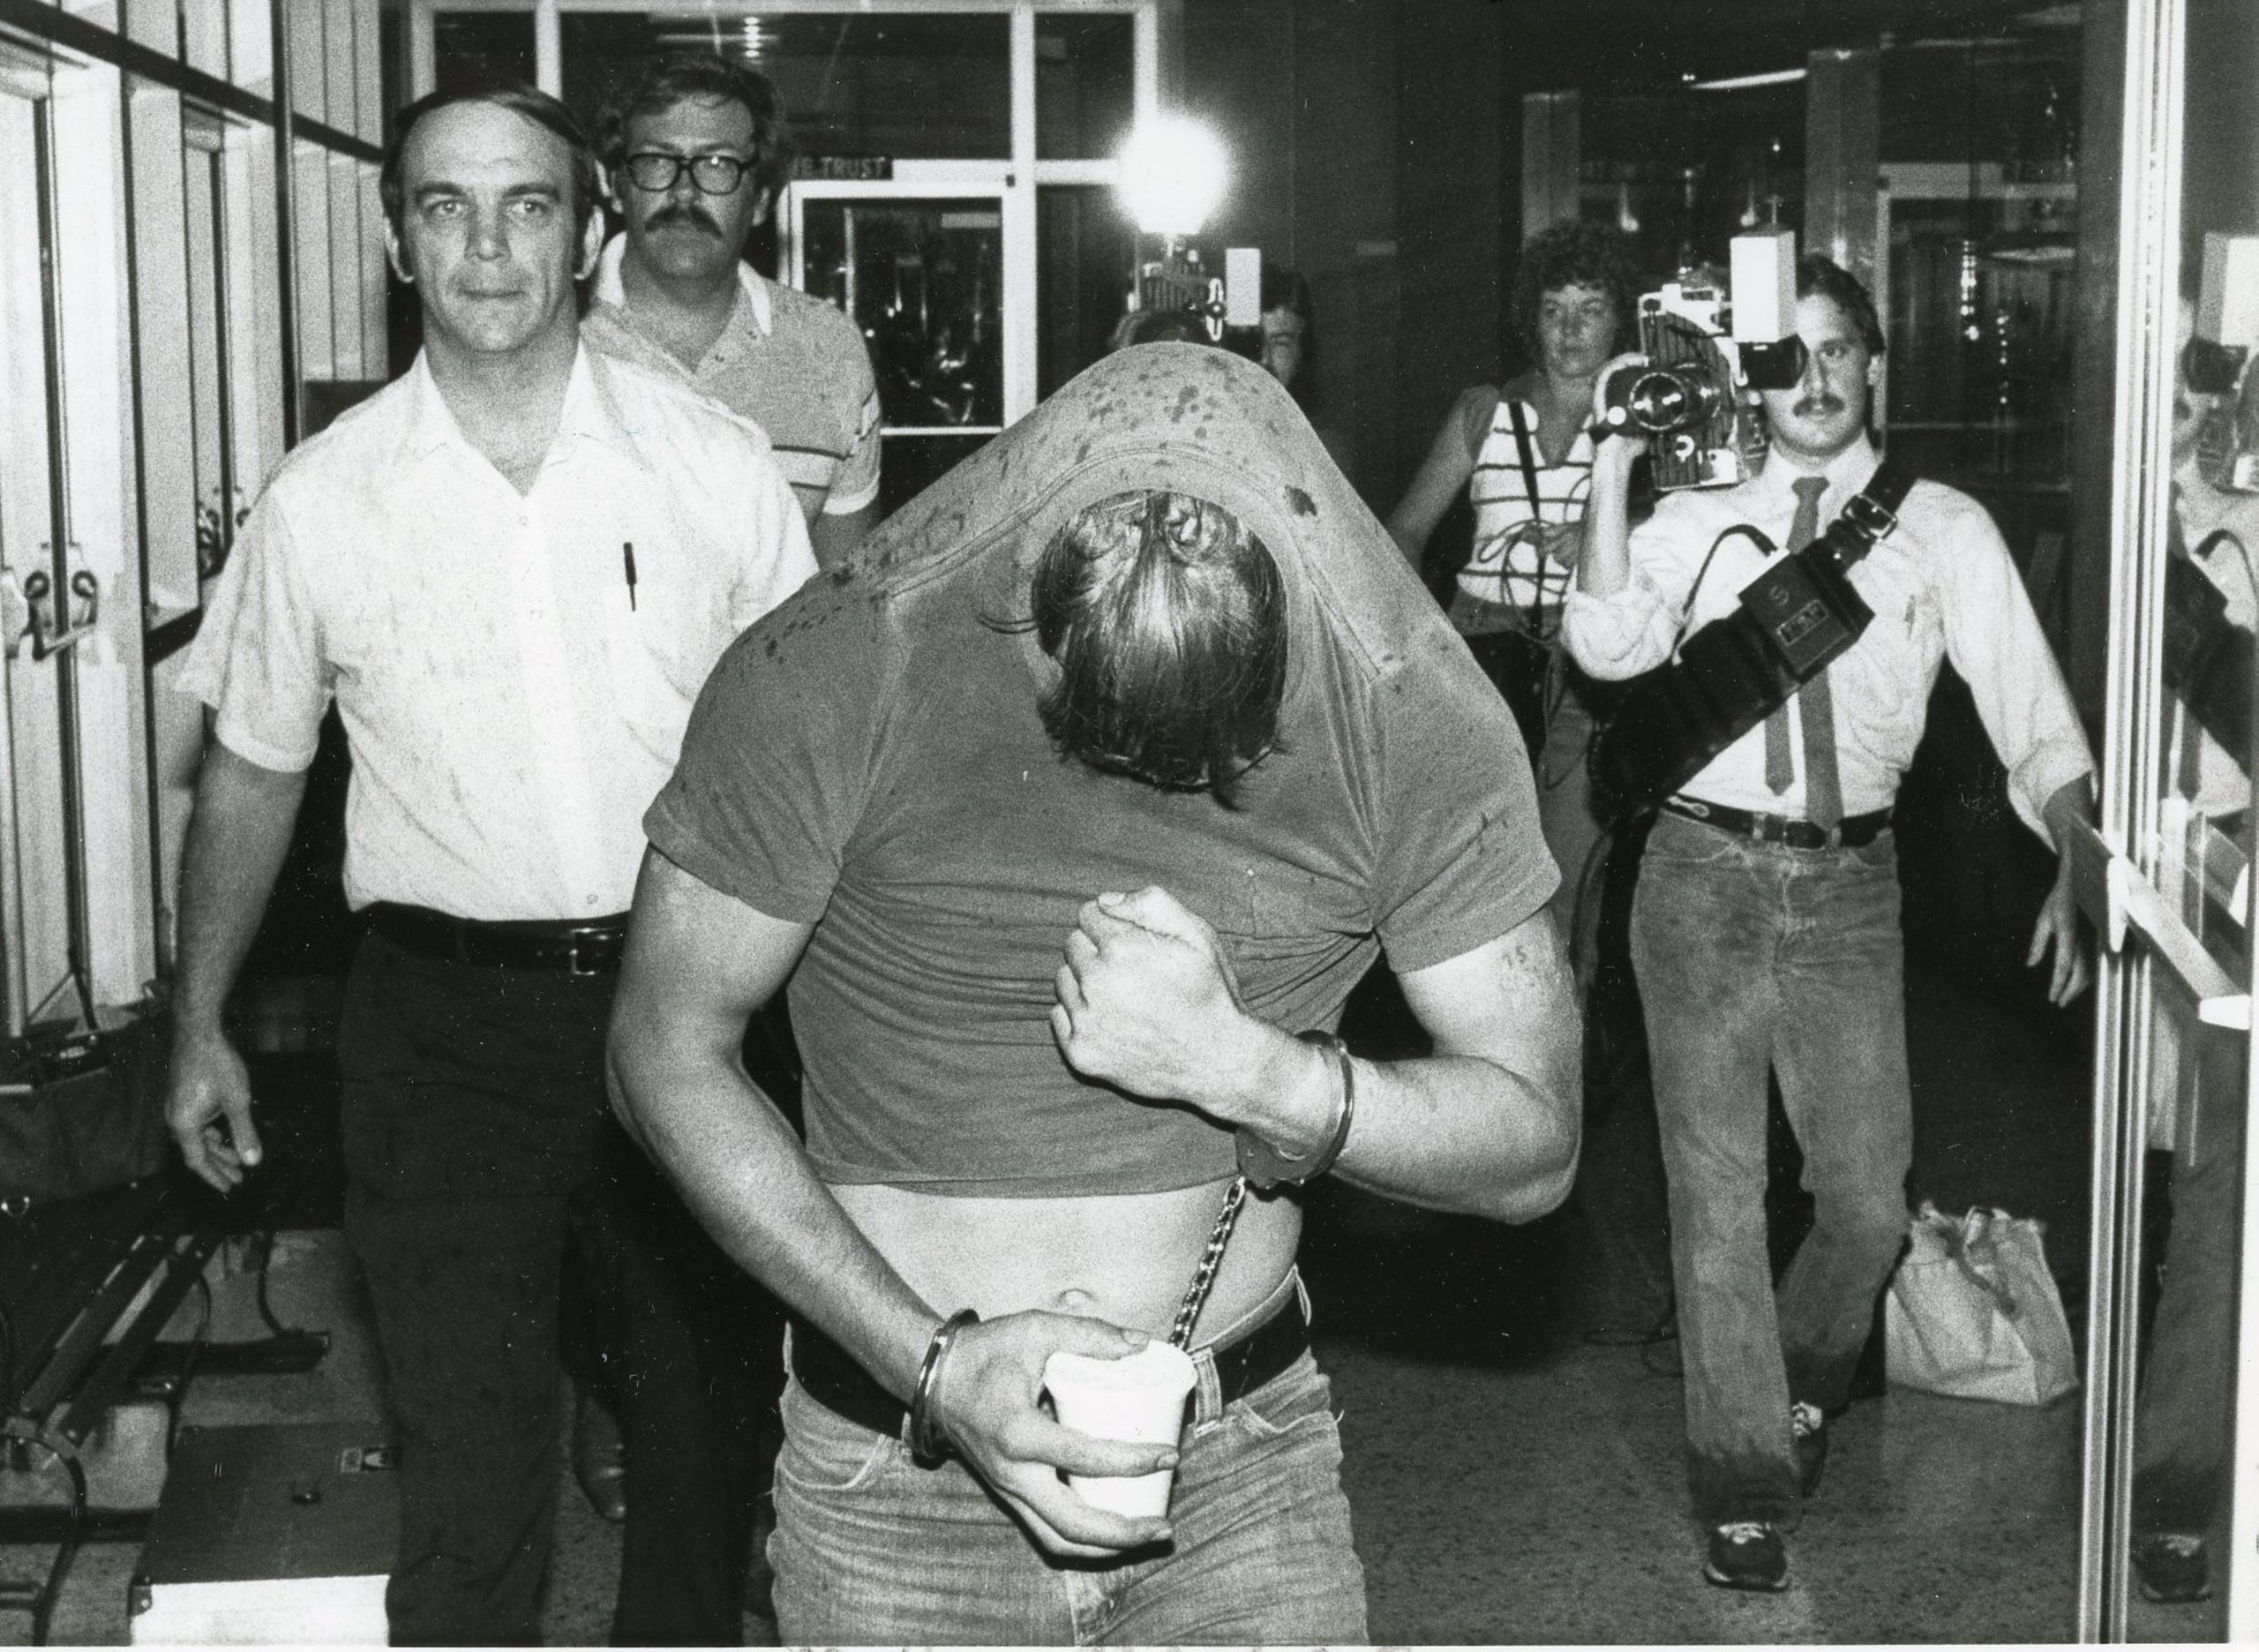 David Earl Miller covers his face with his shirt in this News Sentinel archive photo.